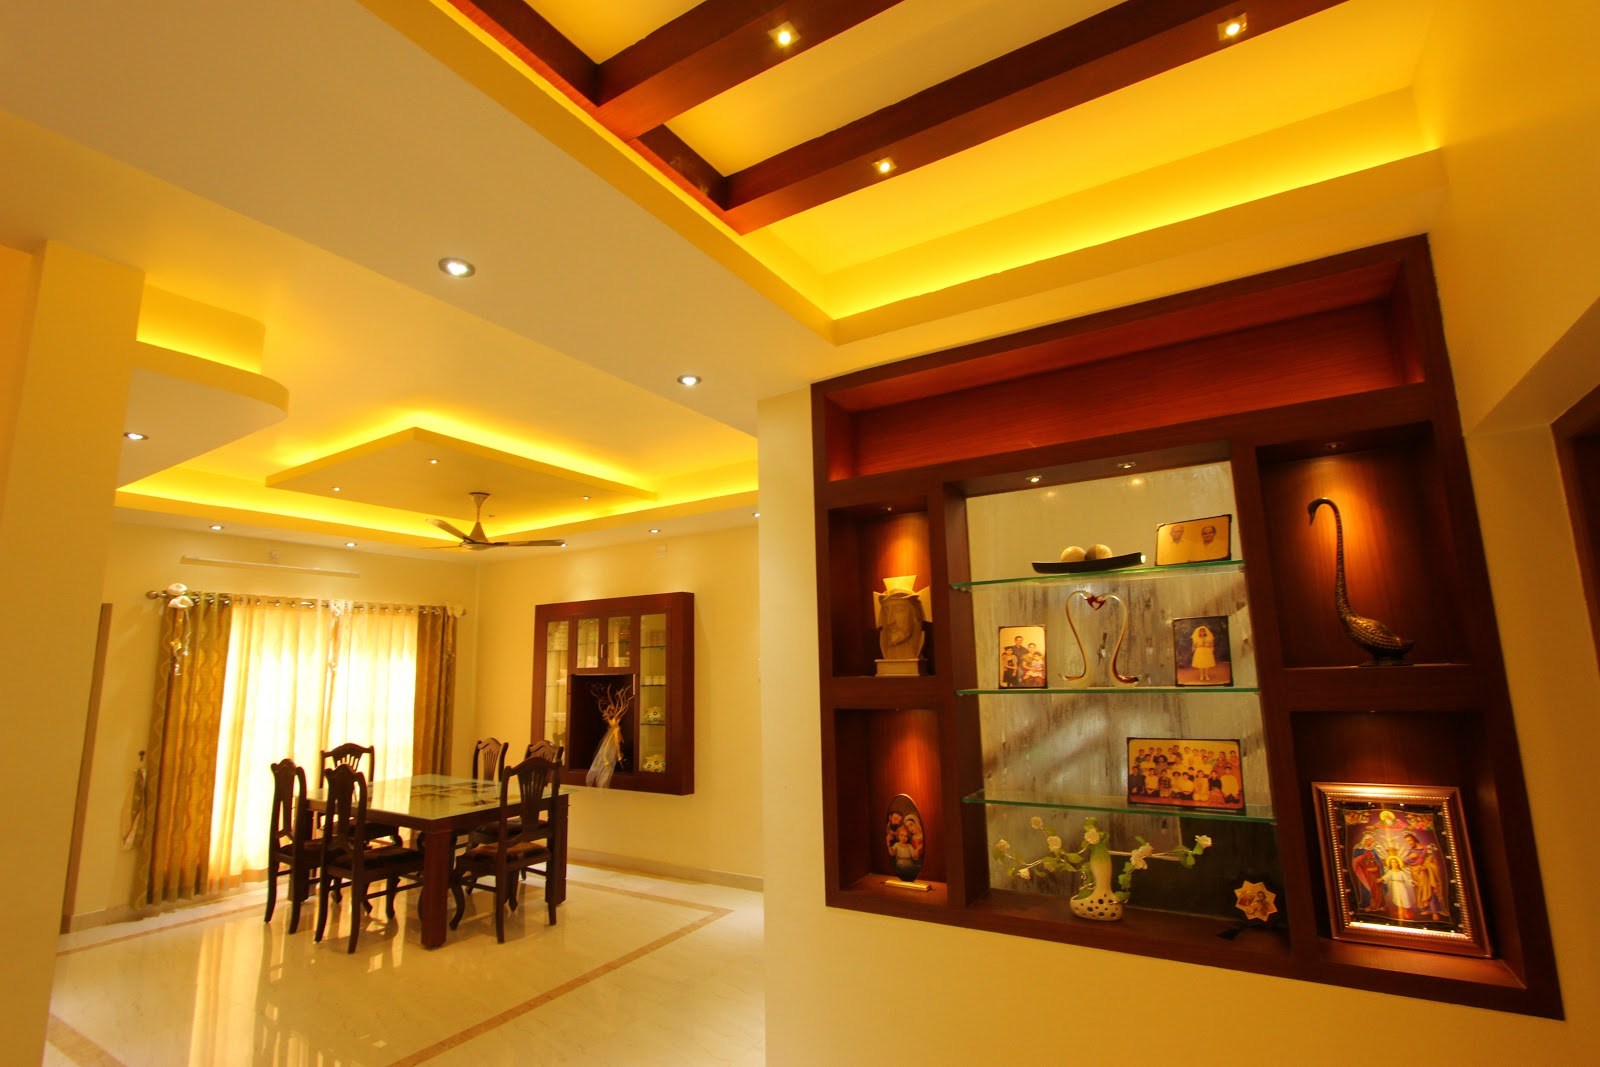 Shilpakala interiors award winning home interior design by shilpakala interiors - Doing home interior design online ...